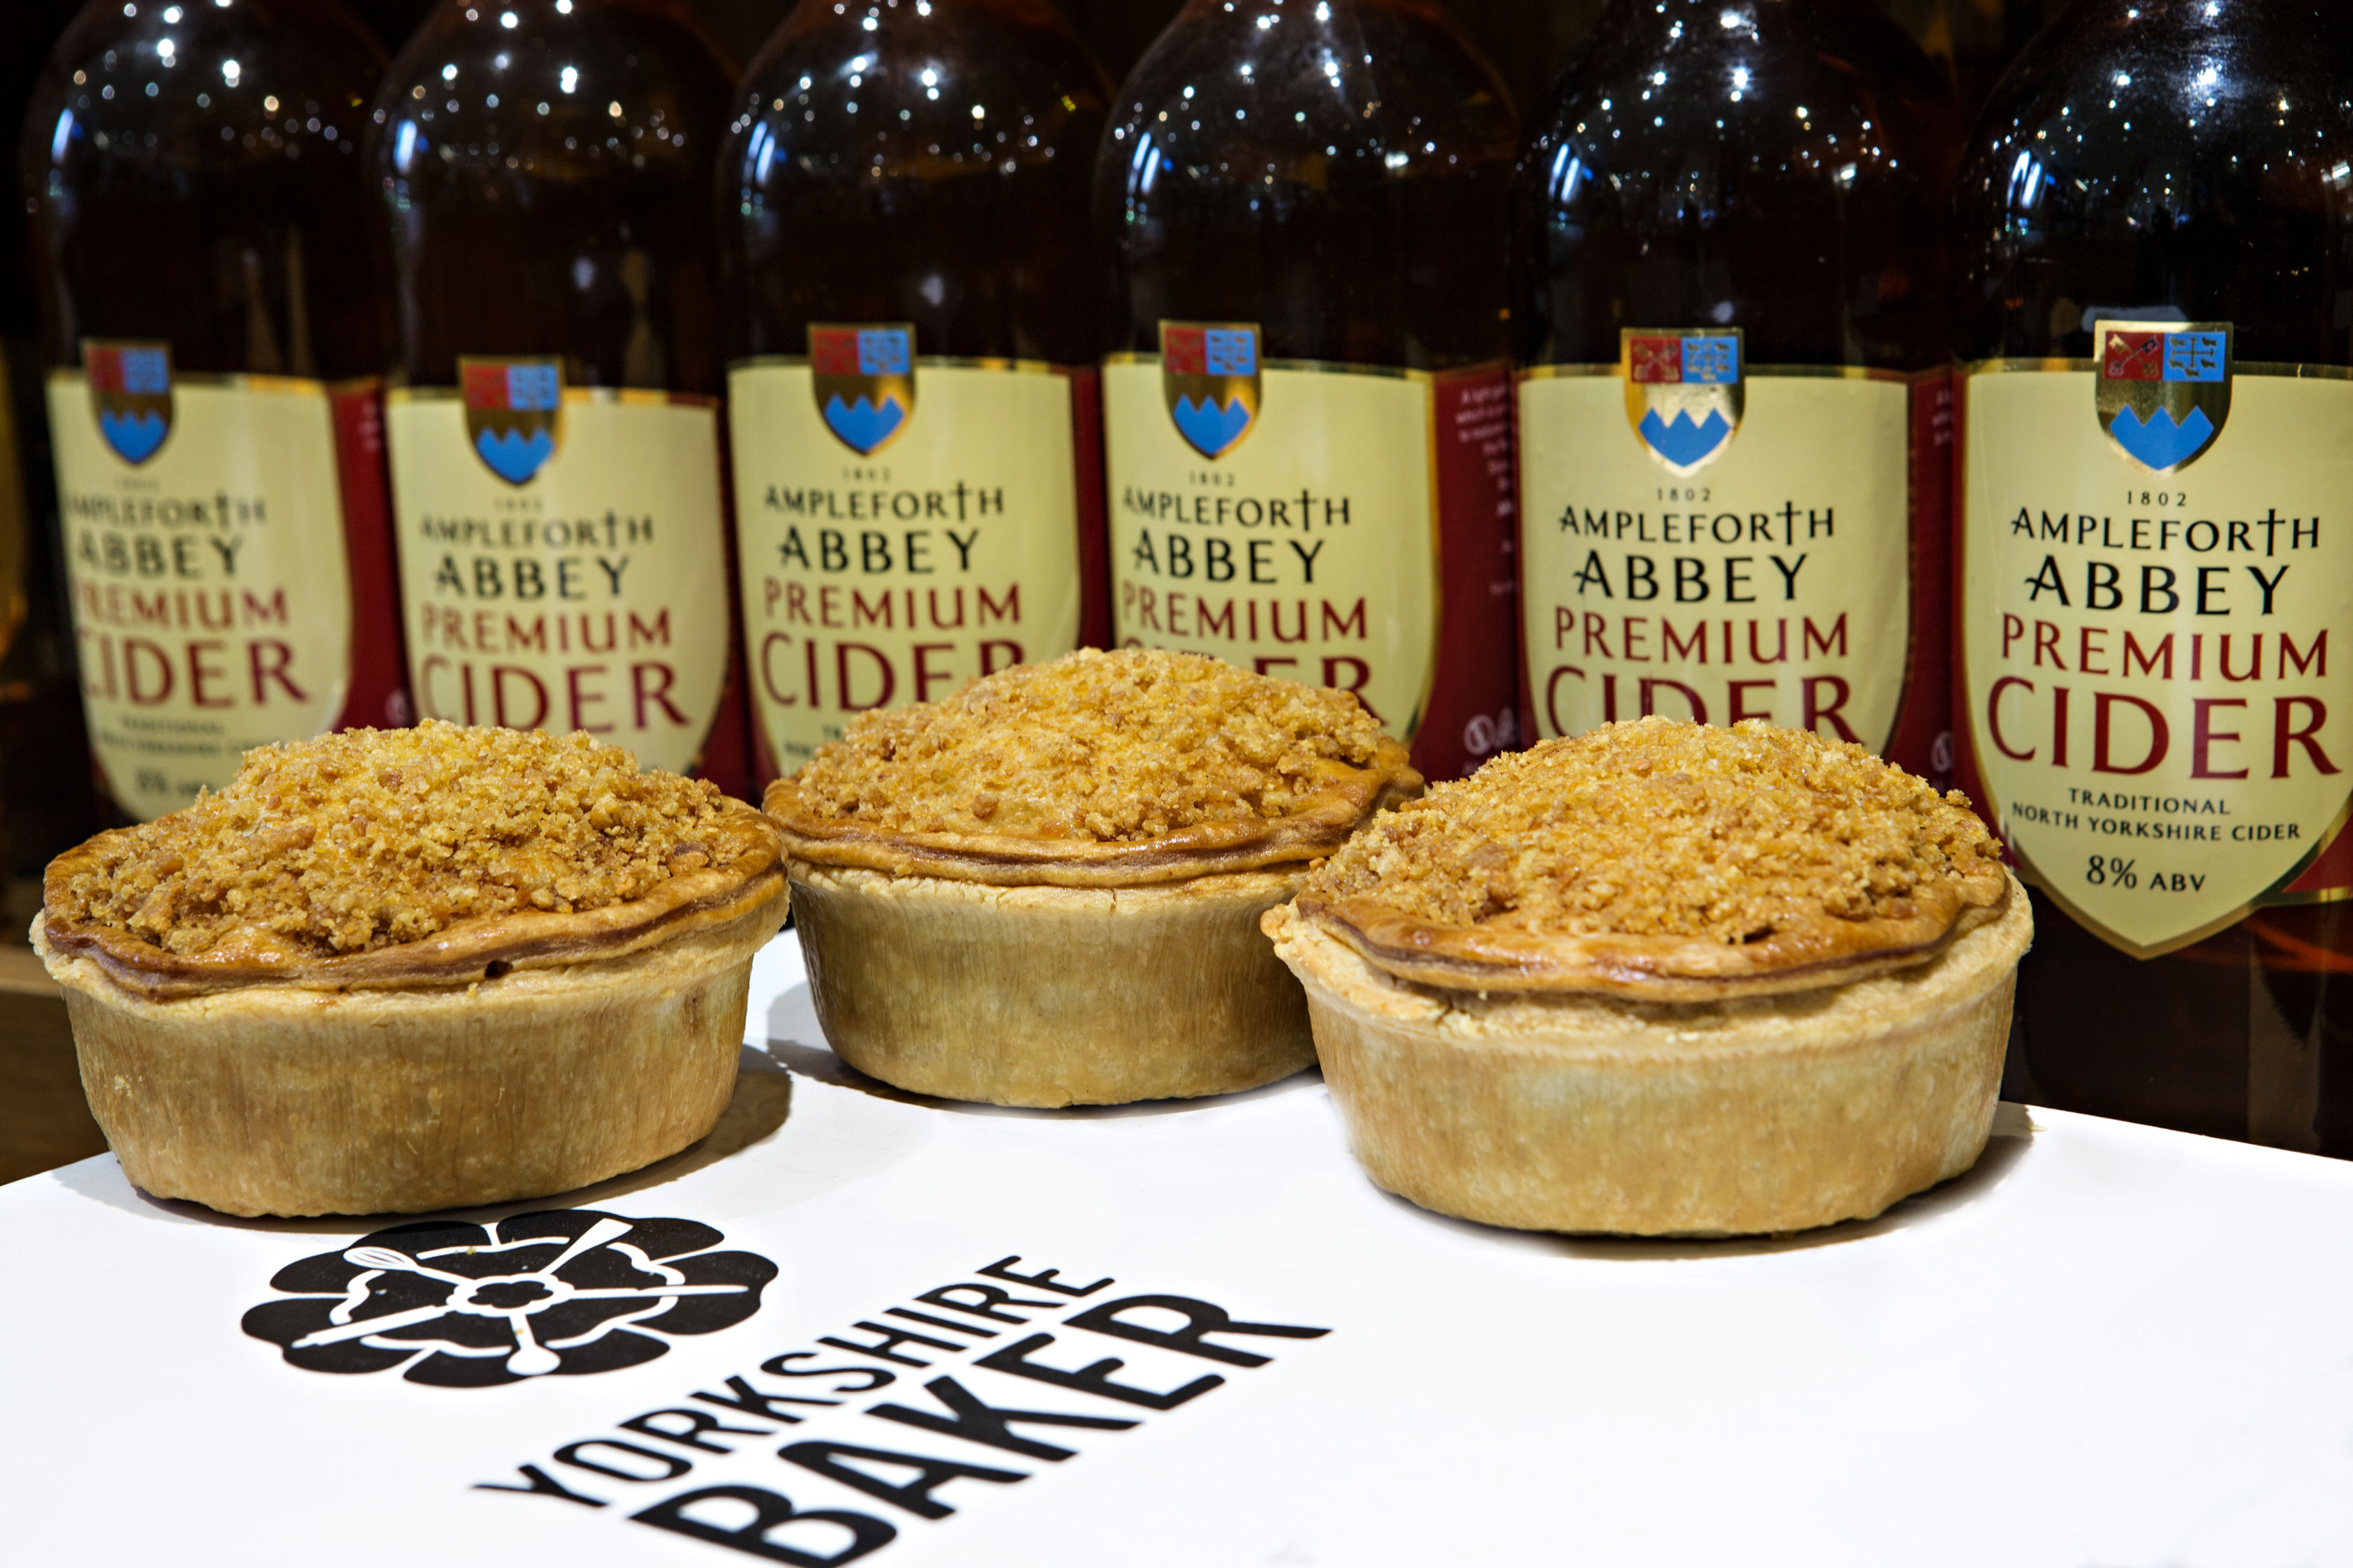 The new pie is a collaboration between Hunters of Helmsley, Yorkshire Baker and Ampleforth Abbey